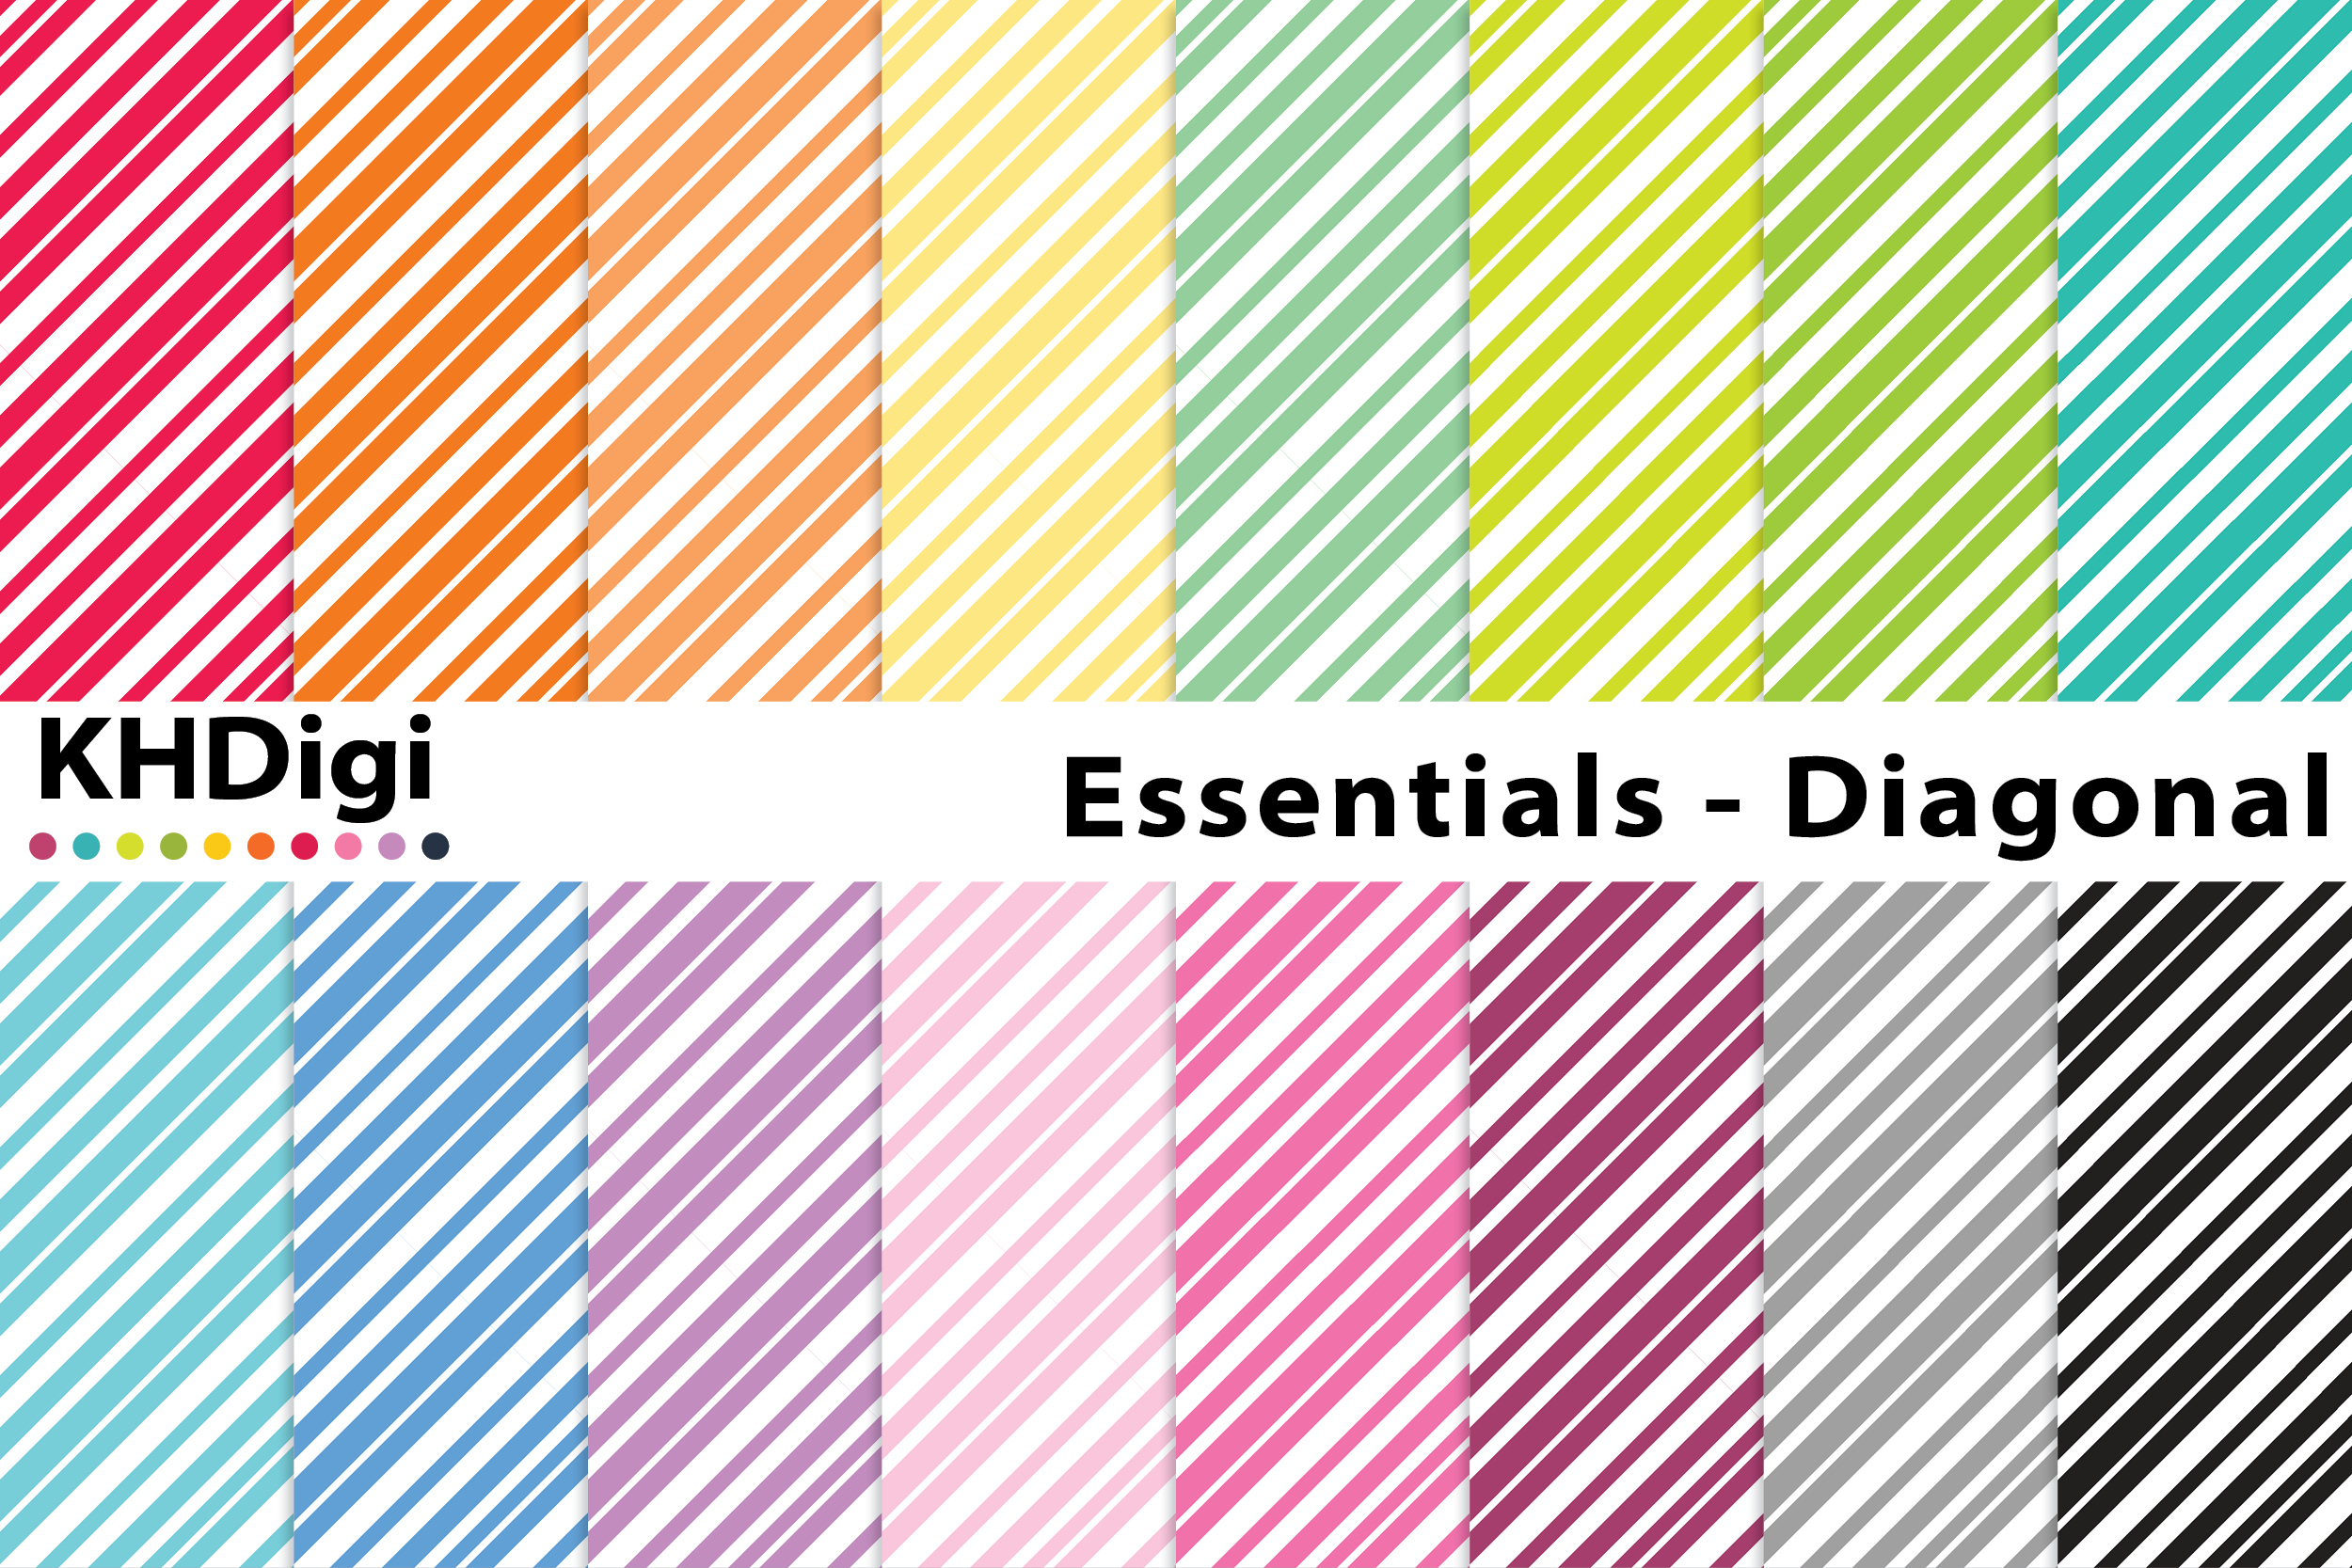 Download Free Essentials Diagonal Lines Graphic By Khdigi Creative Fabrica for Cricut Explore, Silhouette and other cutting machines.